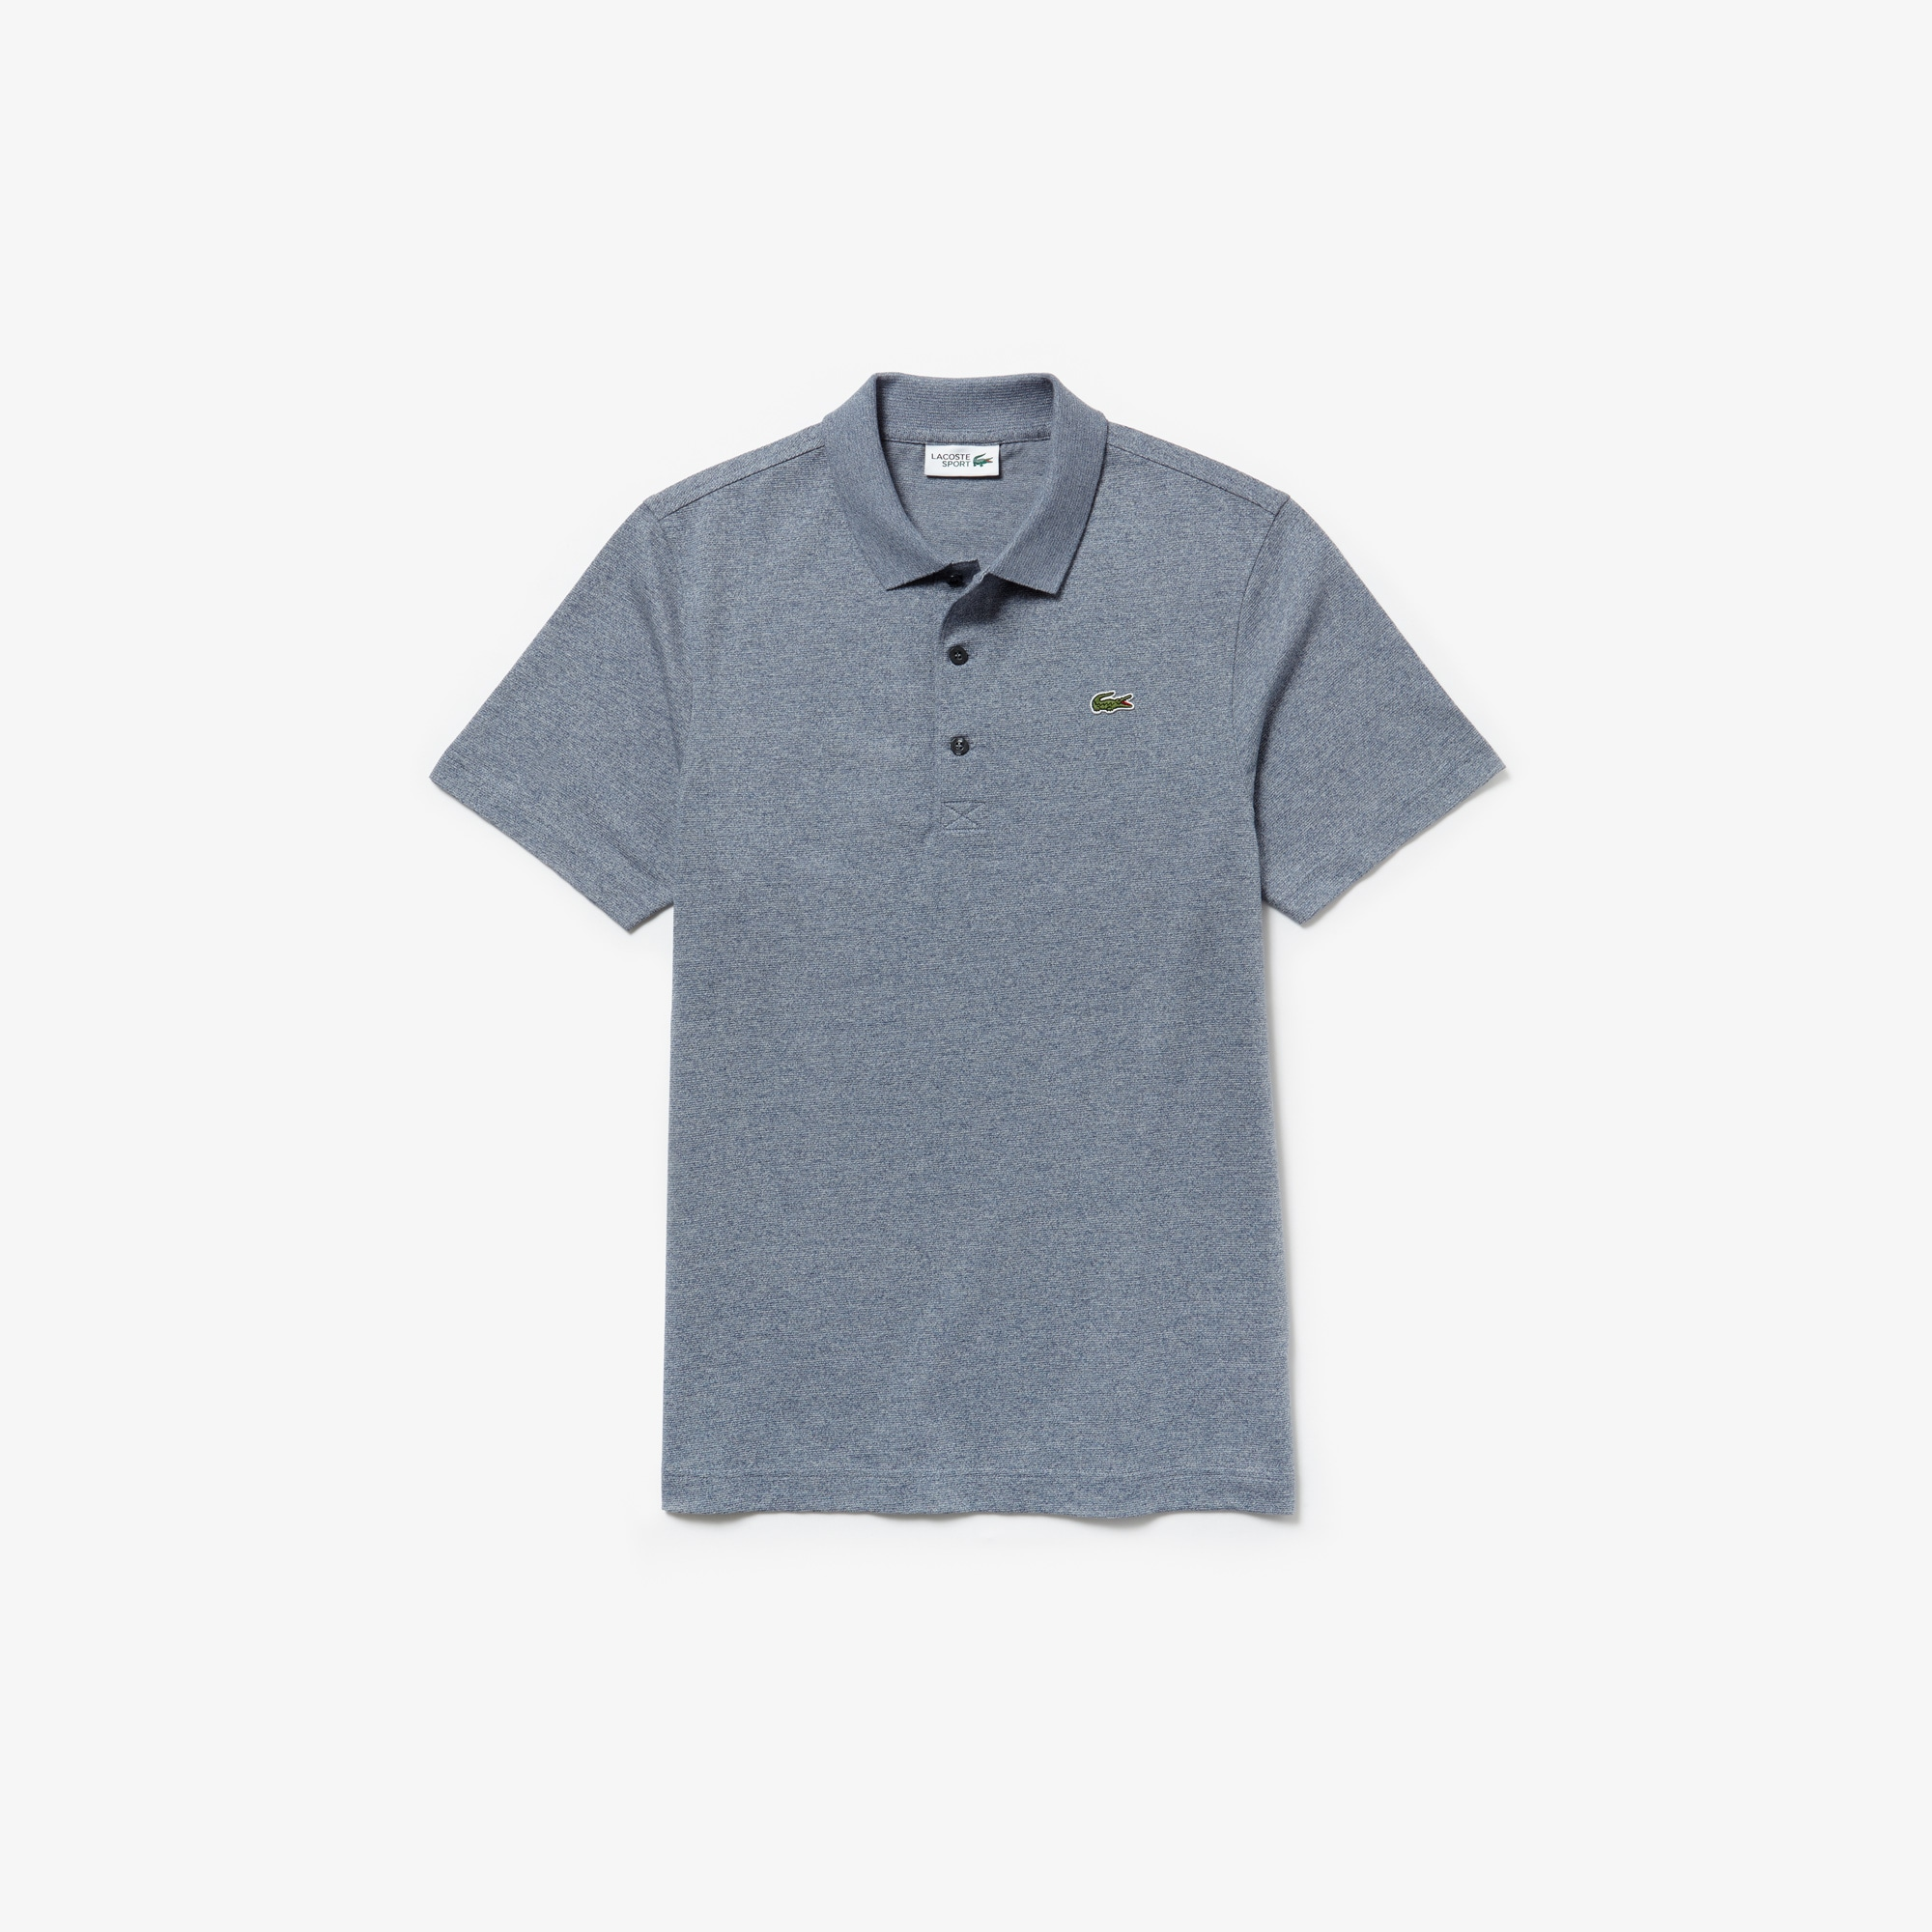 684aed9a595 Men s Lacoste SPORT Tennis regular fit Polo Shirt in ultra-lightweight knit